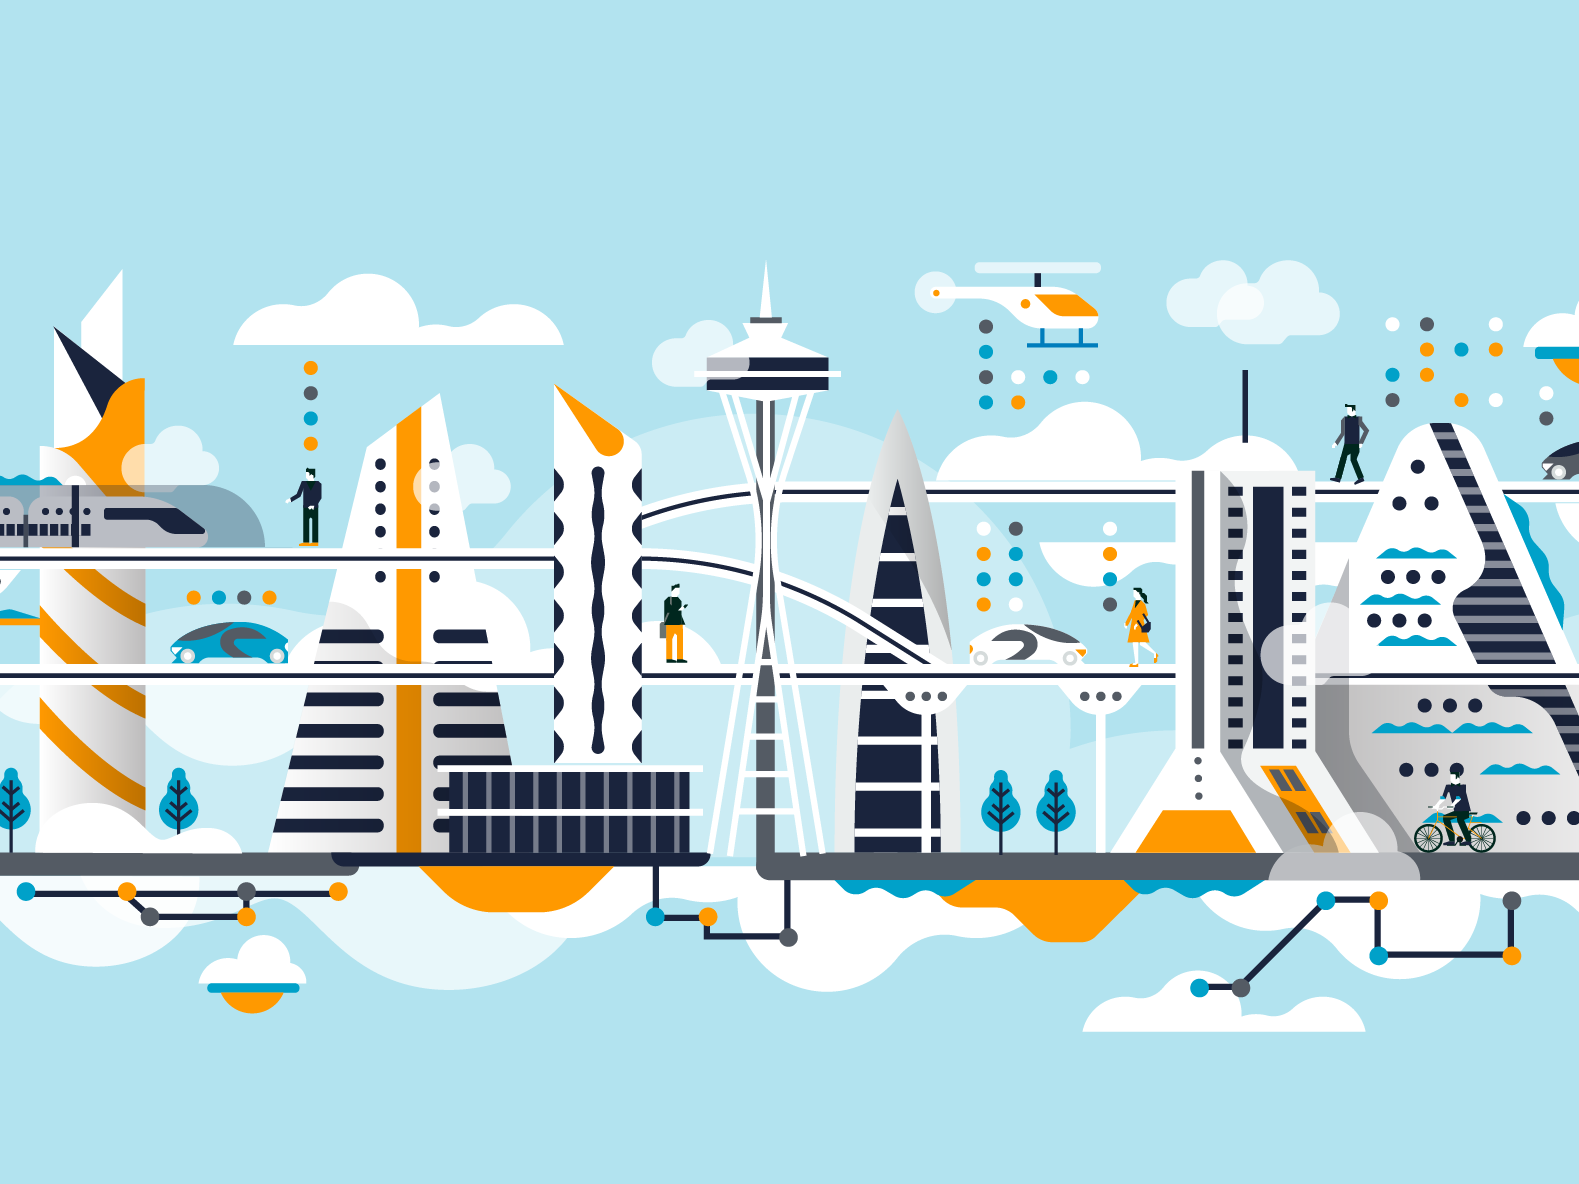 Amazon - Cloud city illustration vehicle editorial city icon people character illustrator 2d flat vector illustration cloud city amazon